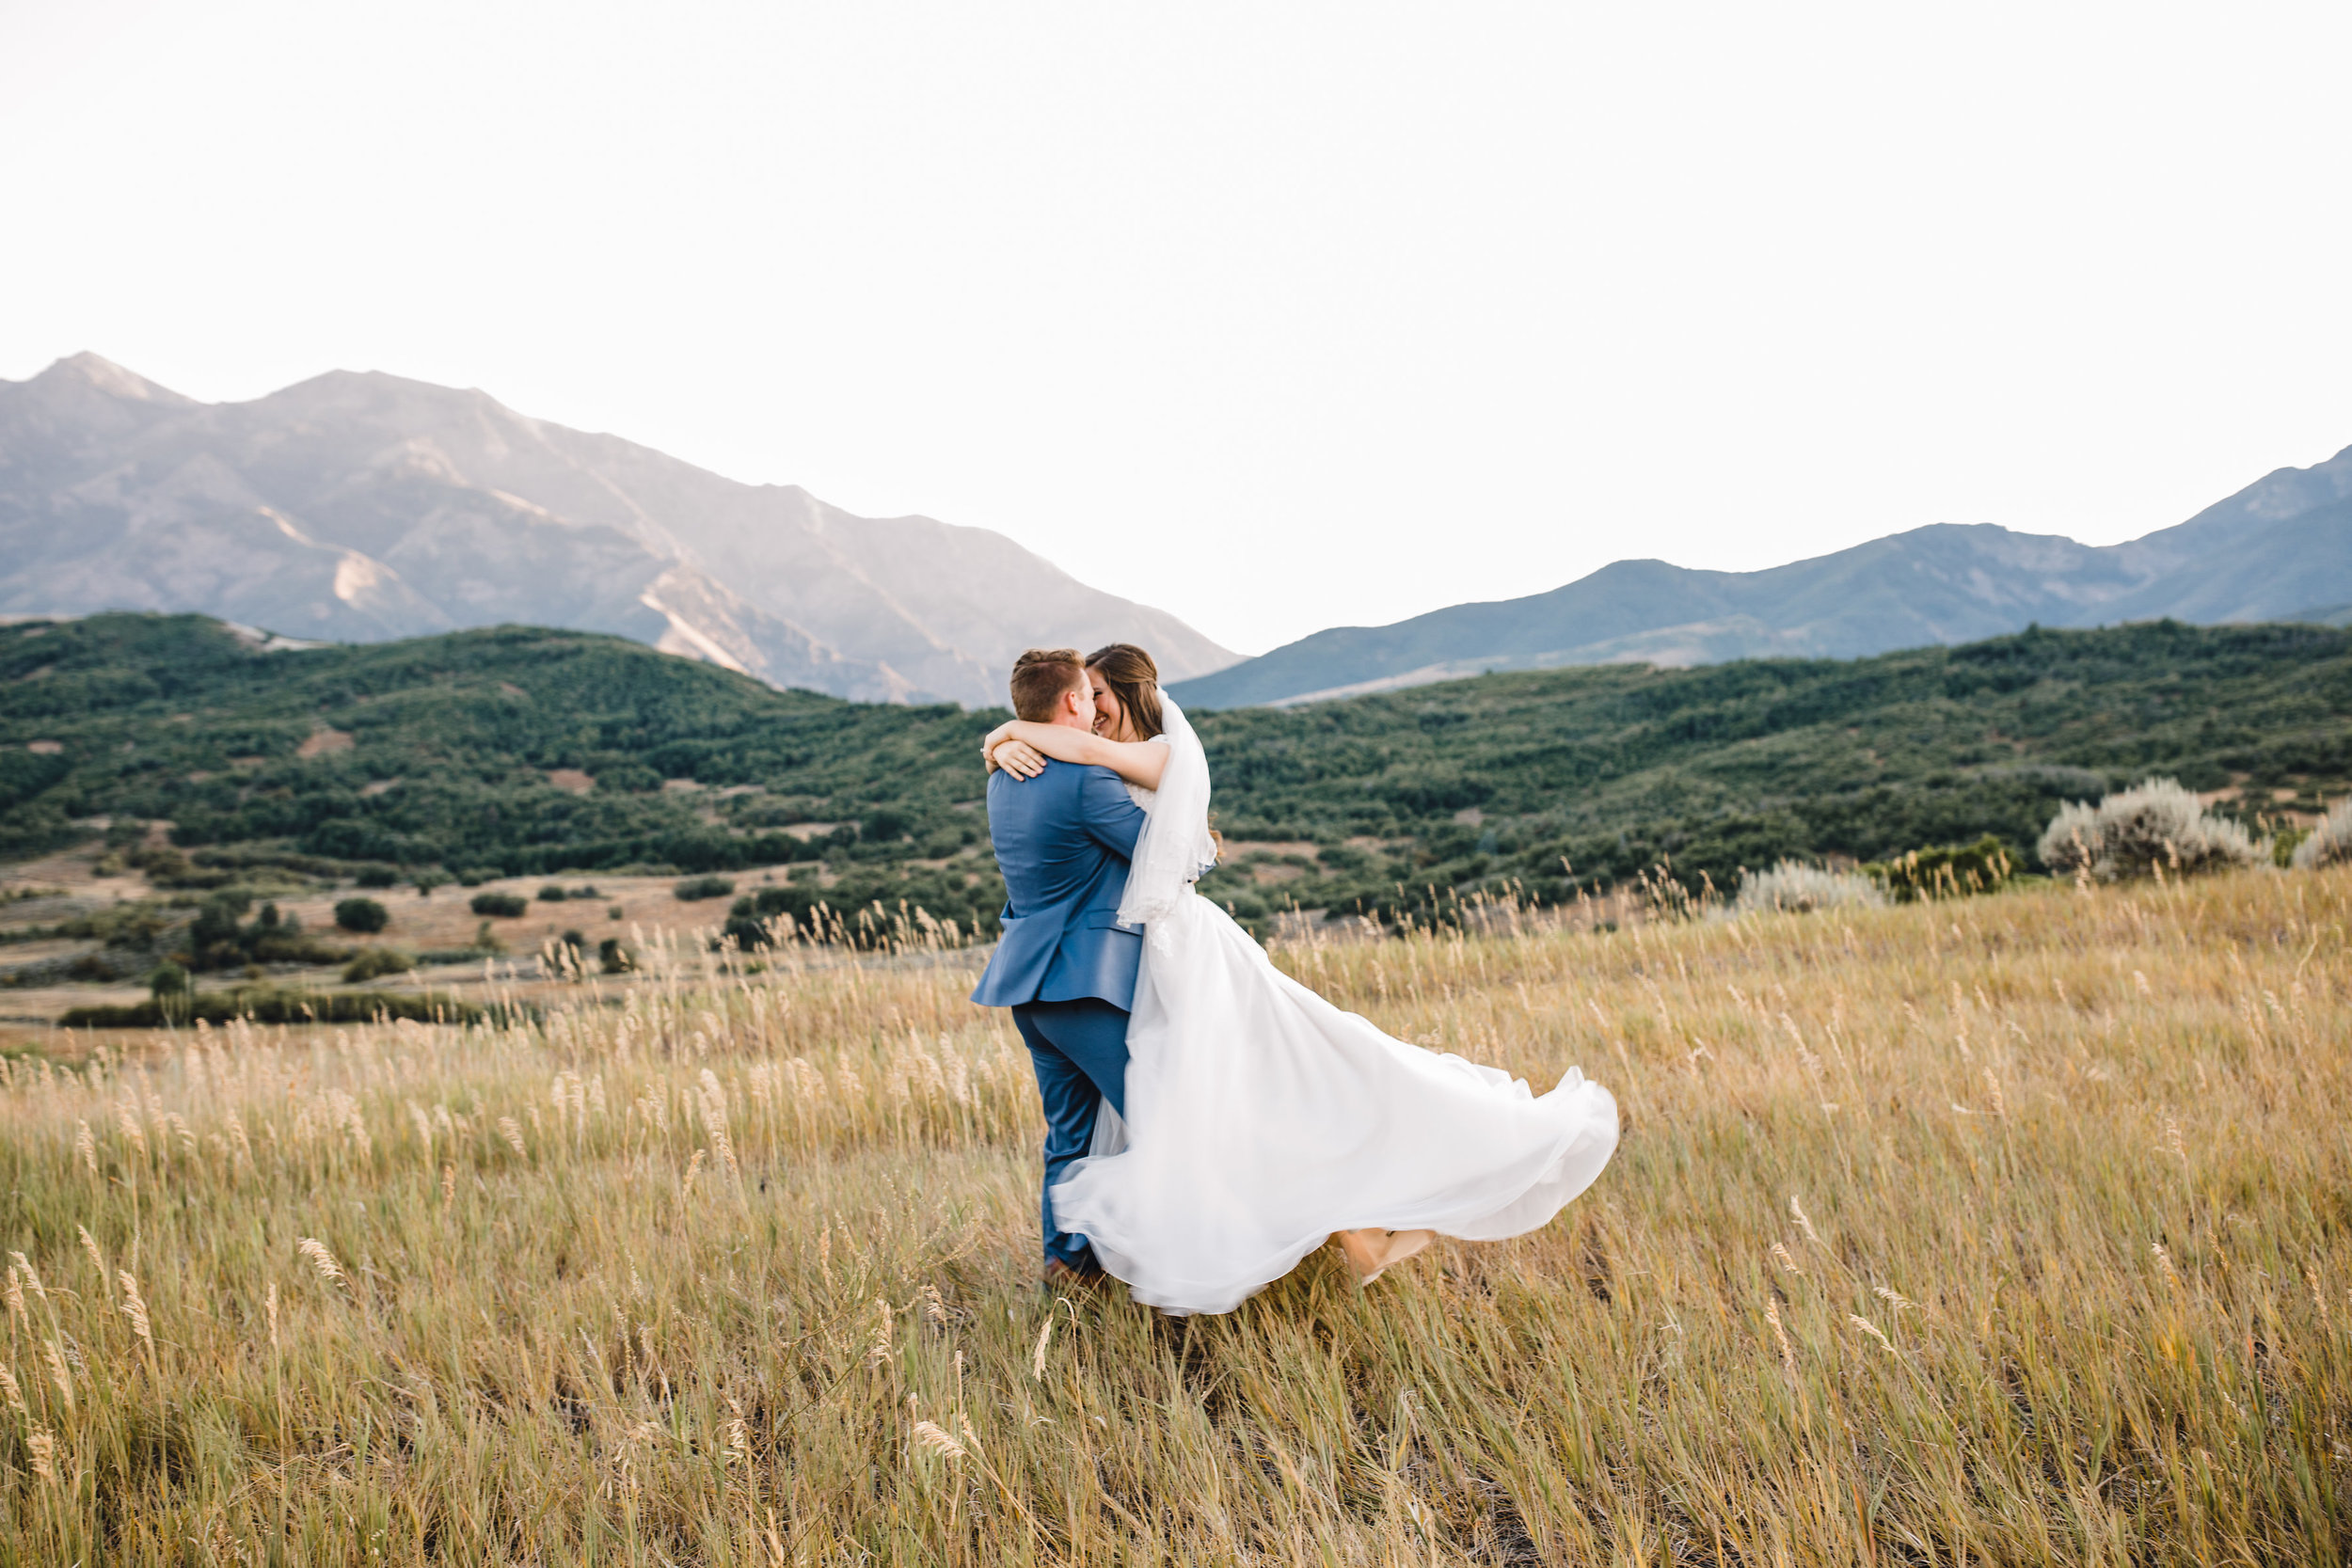 Cache valley utah photographer bridals formals spinning hugging field mountains